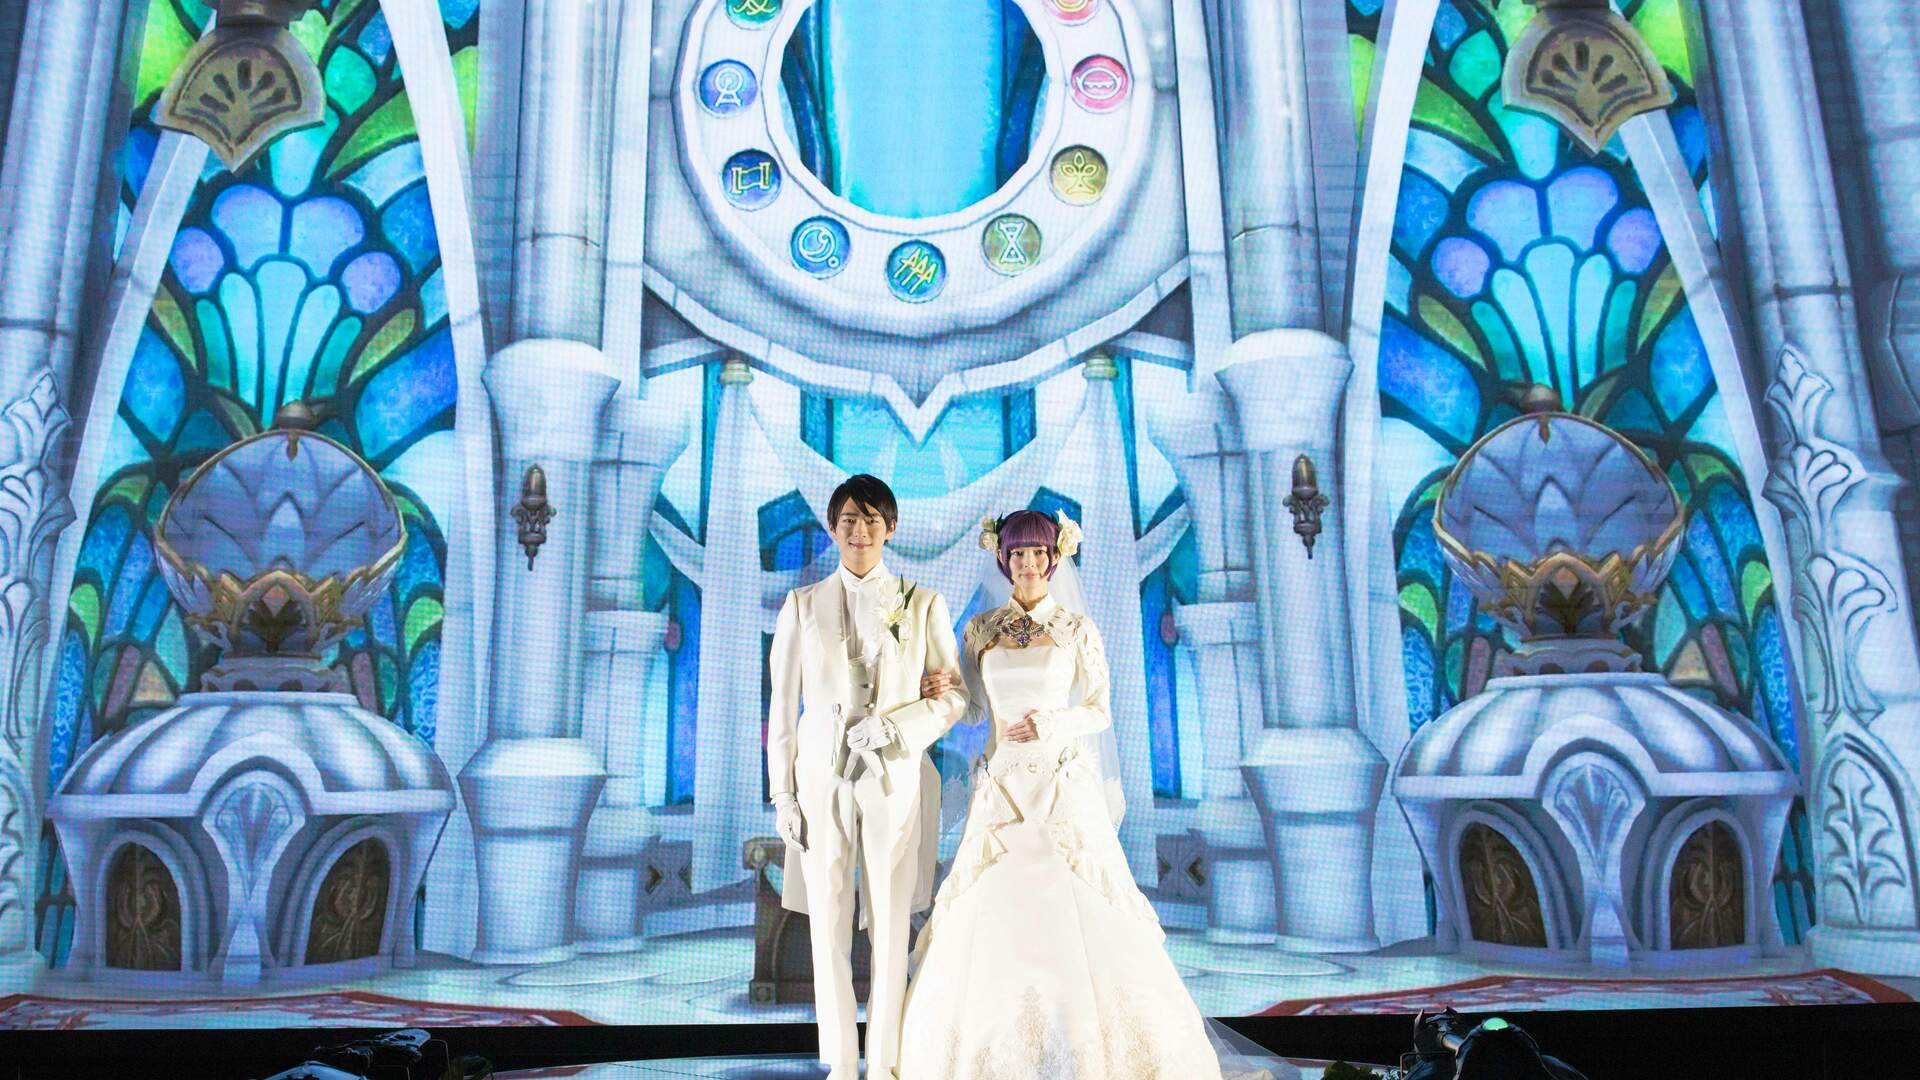 Final Fantasy 14 Themed Weddings Let You Level Up Your Relationship for the Bargain Price of $30,000